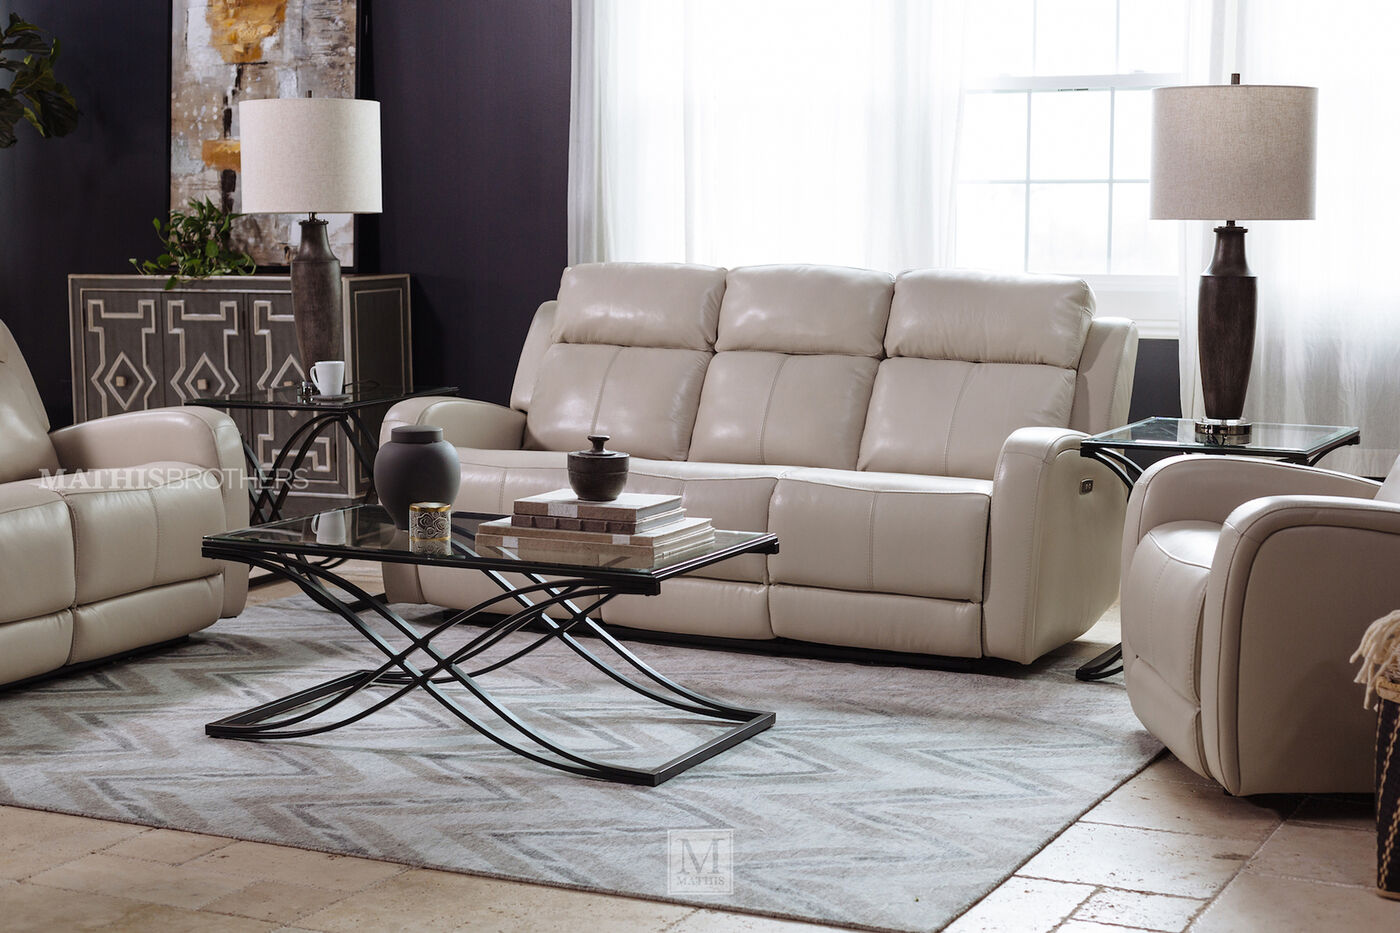 Leather 81 Power Reclining Sofa In Cream Mathis Brothers Furniture